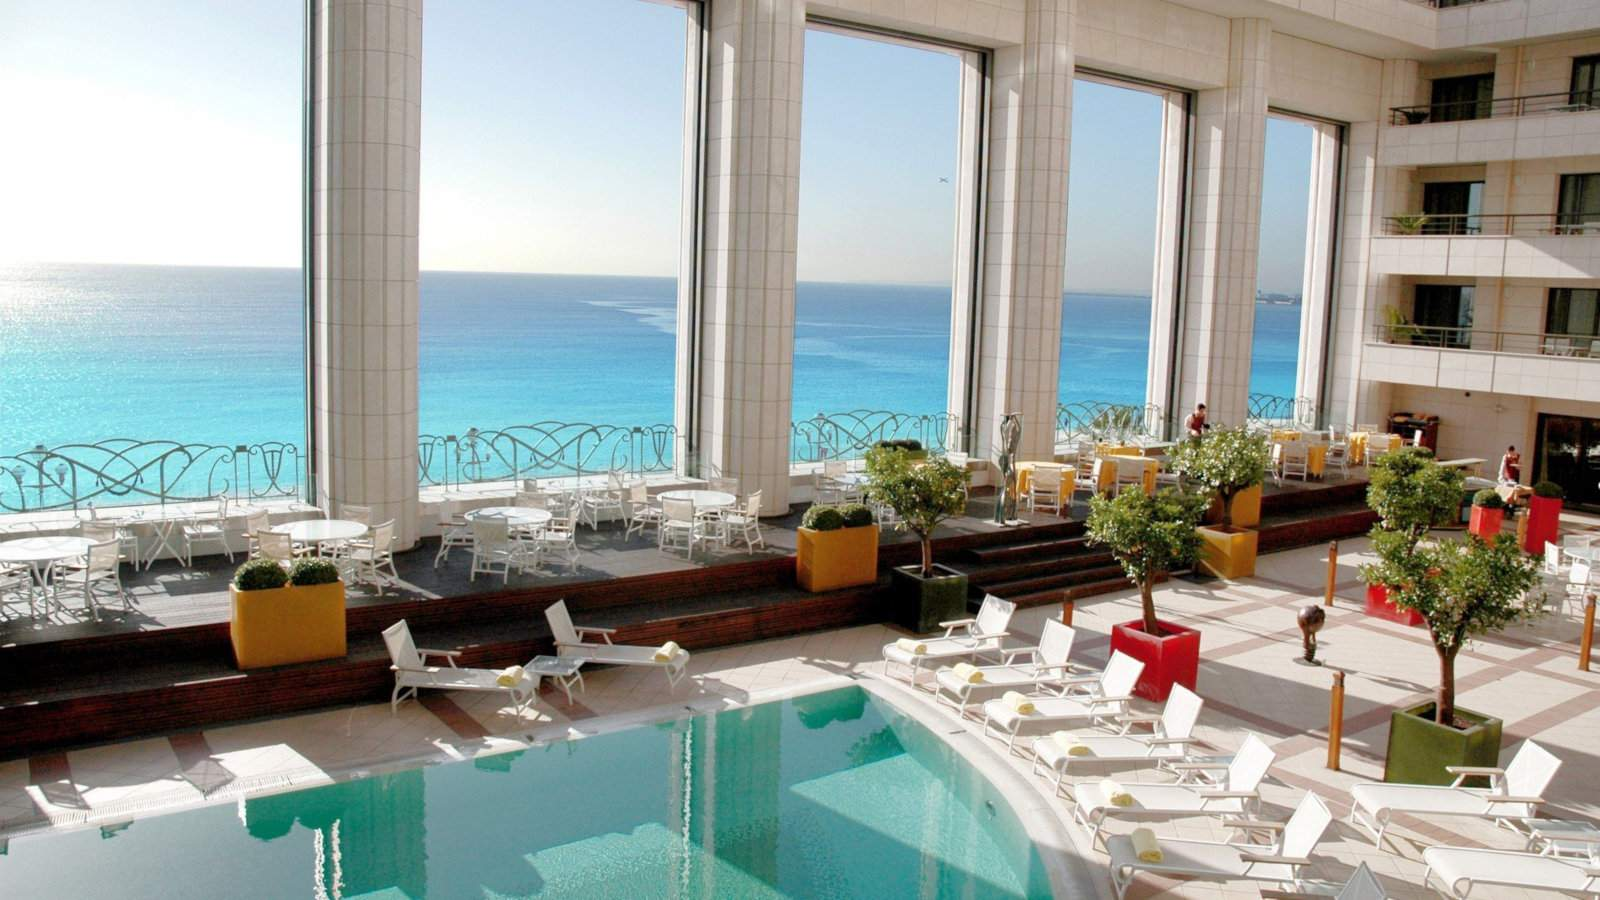 For luxurious and gay friendly accommodation, you can't go past the Hyatt Regency Nice